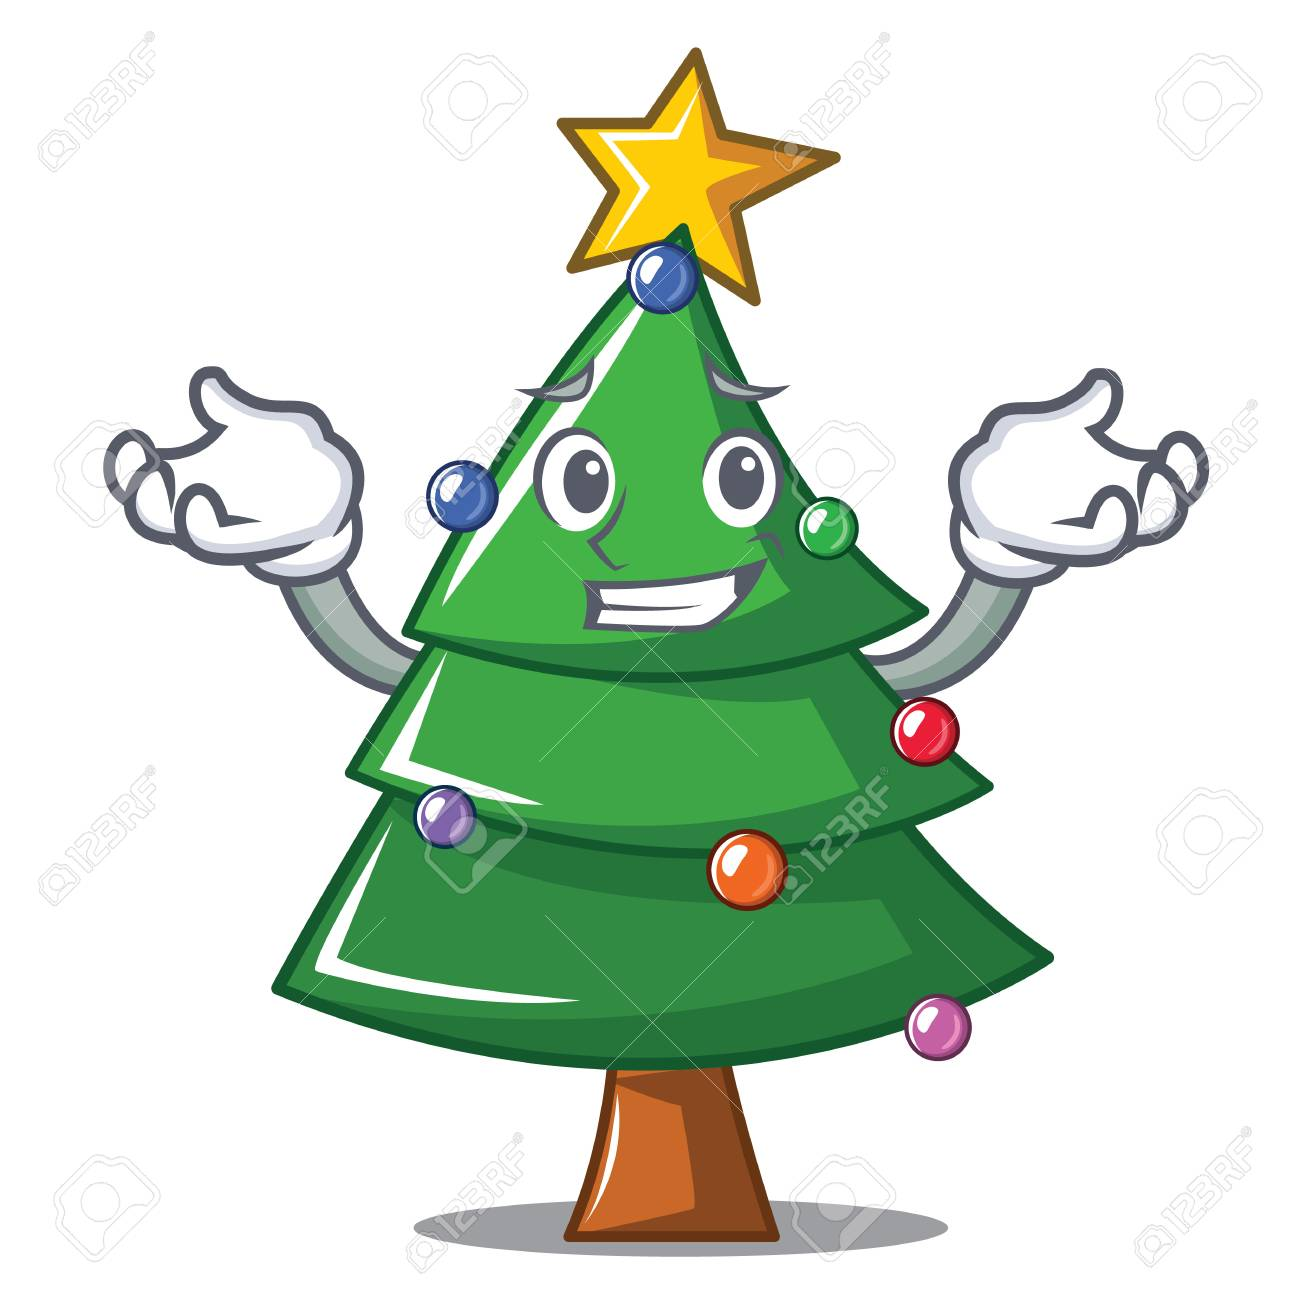 Grinning Christmas Tree Character Cartoon Royalty Free Cliparts